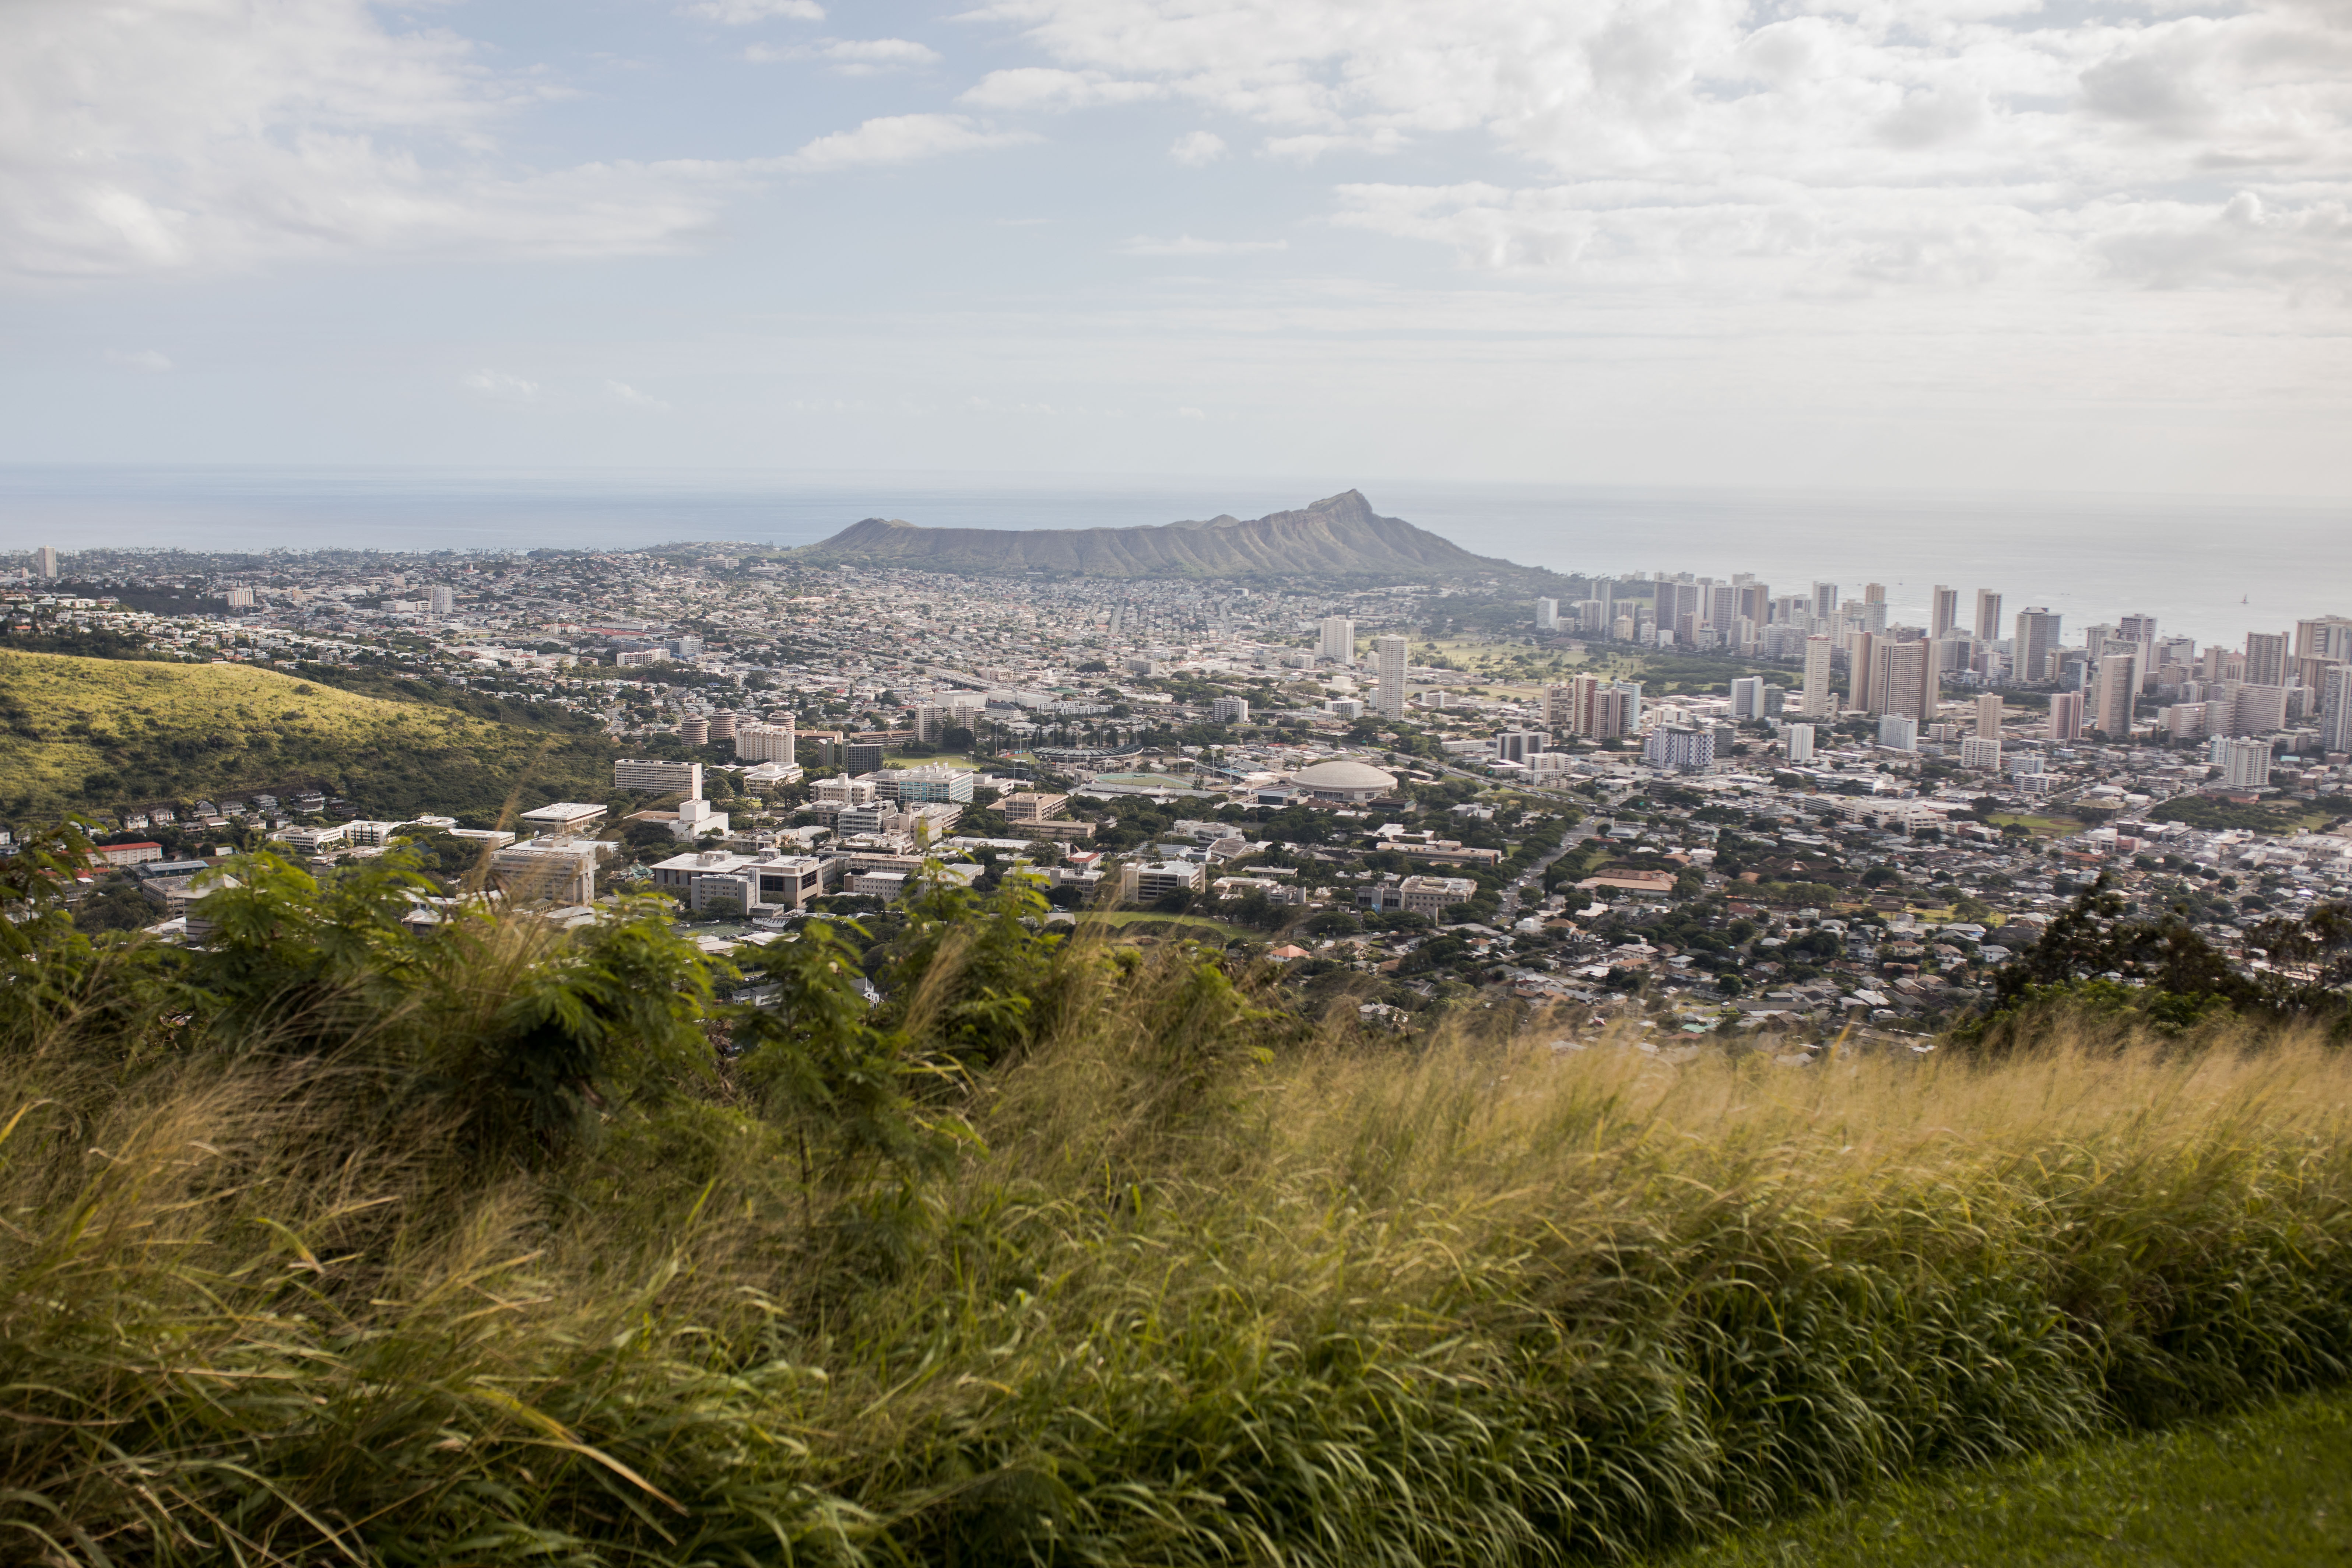 Tantalus Lookout is a popular summit in Oahu, Hawaii